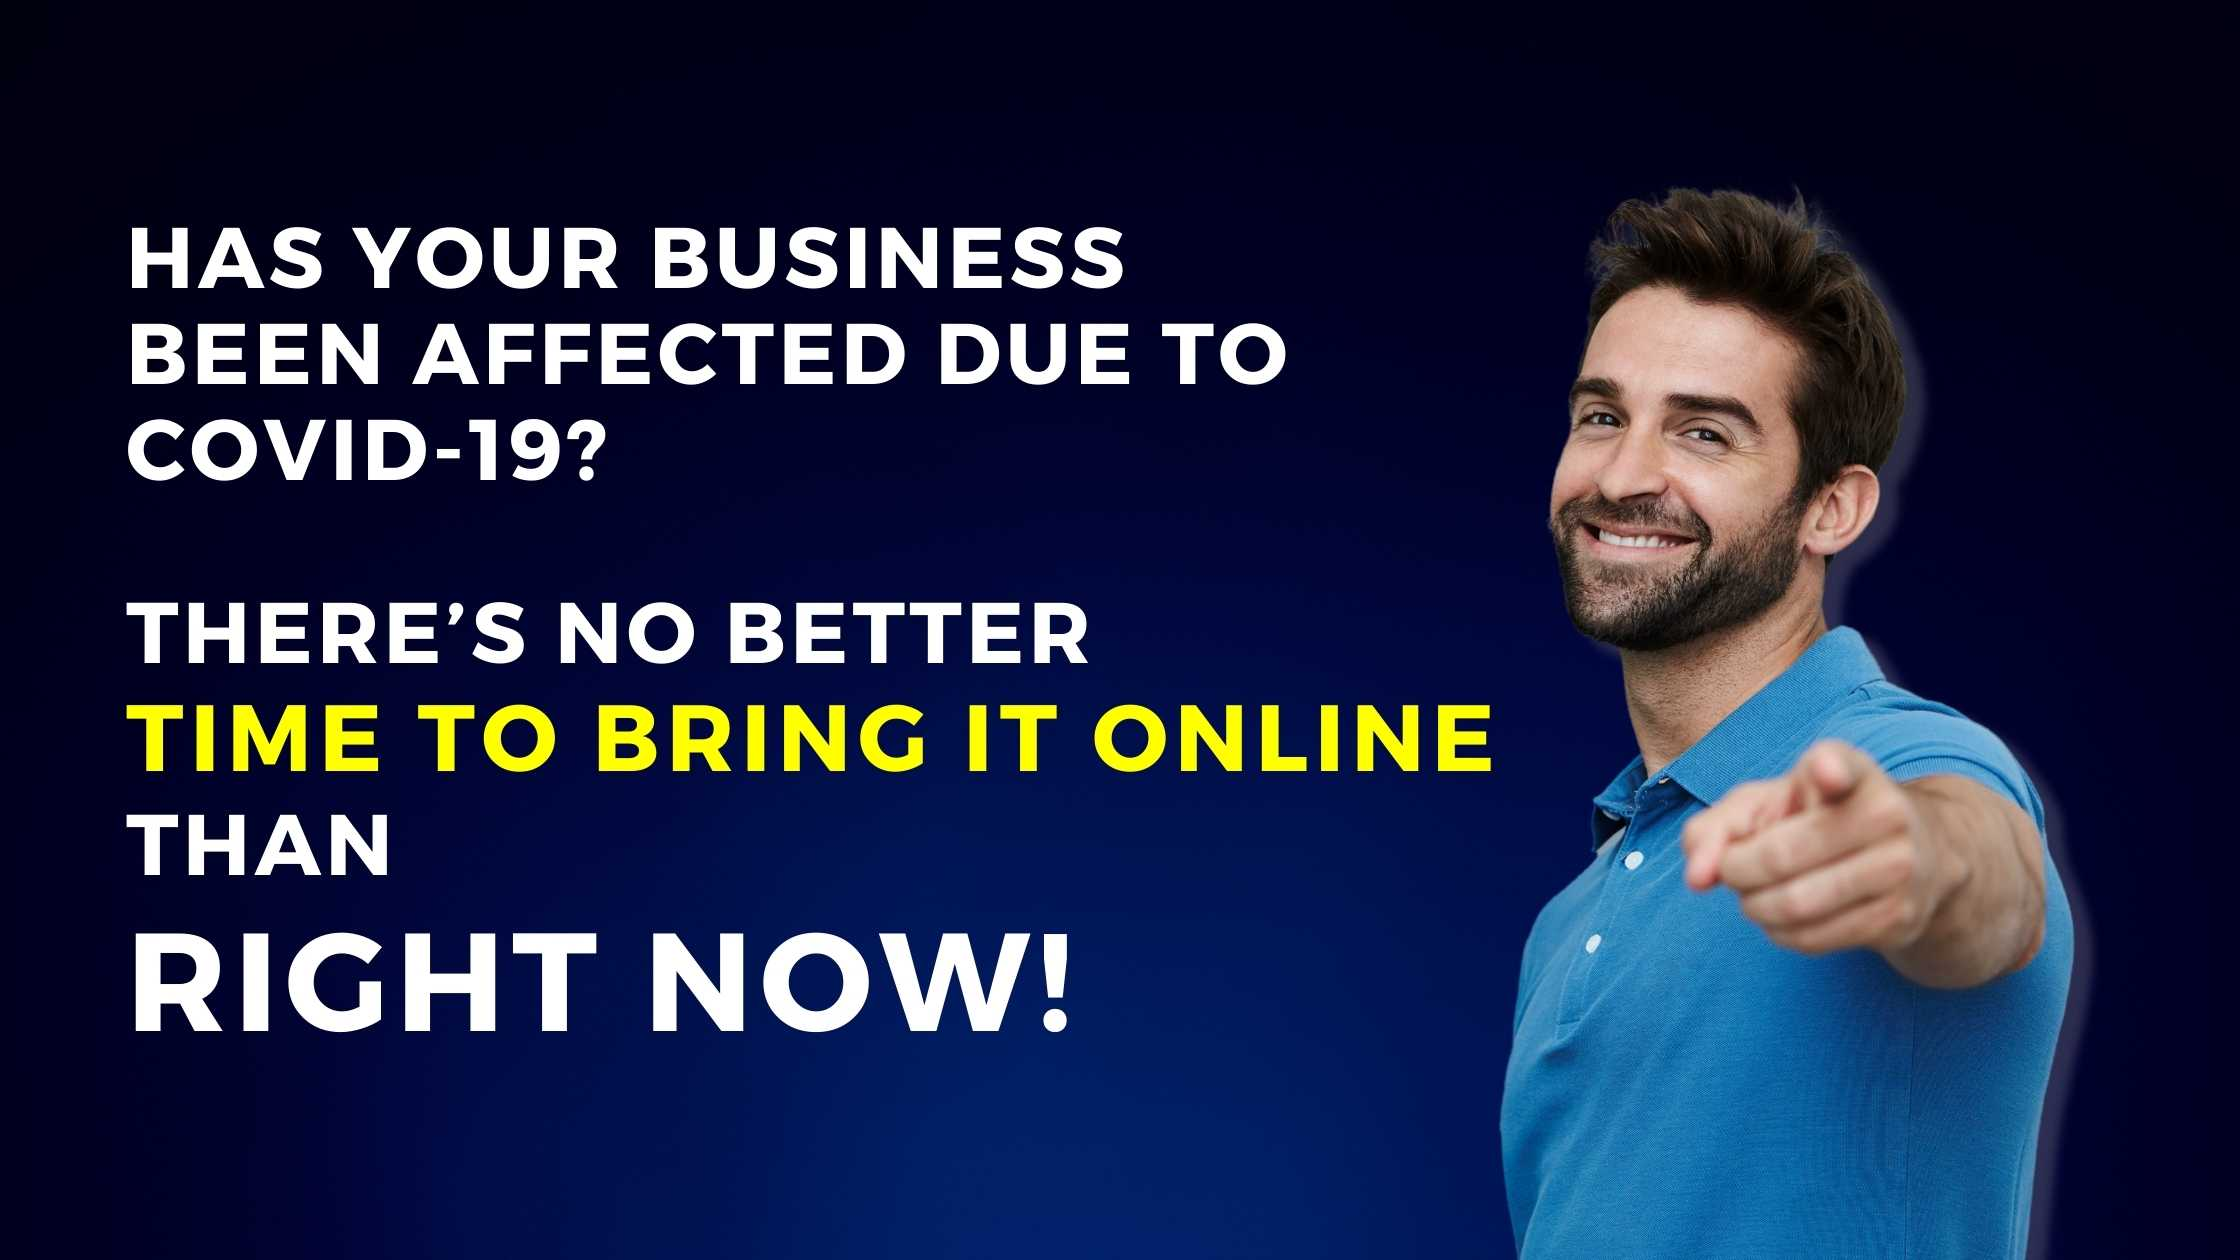 Has your business been affected due to Covid-19? Get some witty Digital Marketing Tips from Samkit Mehta